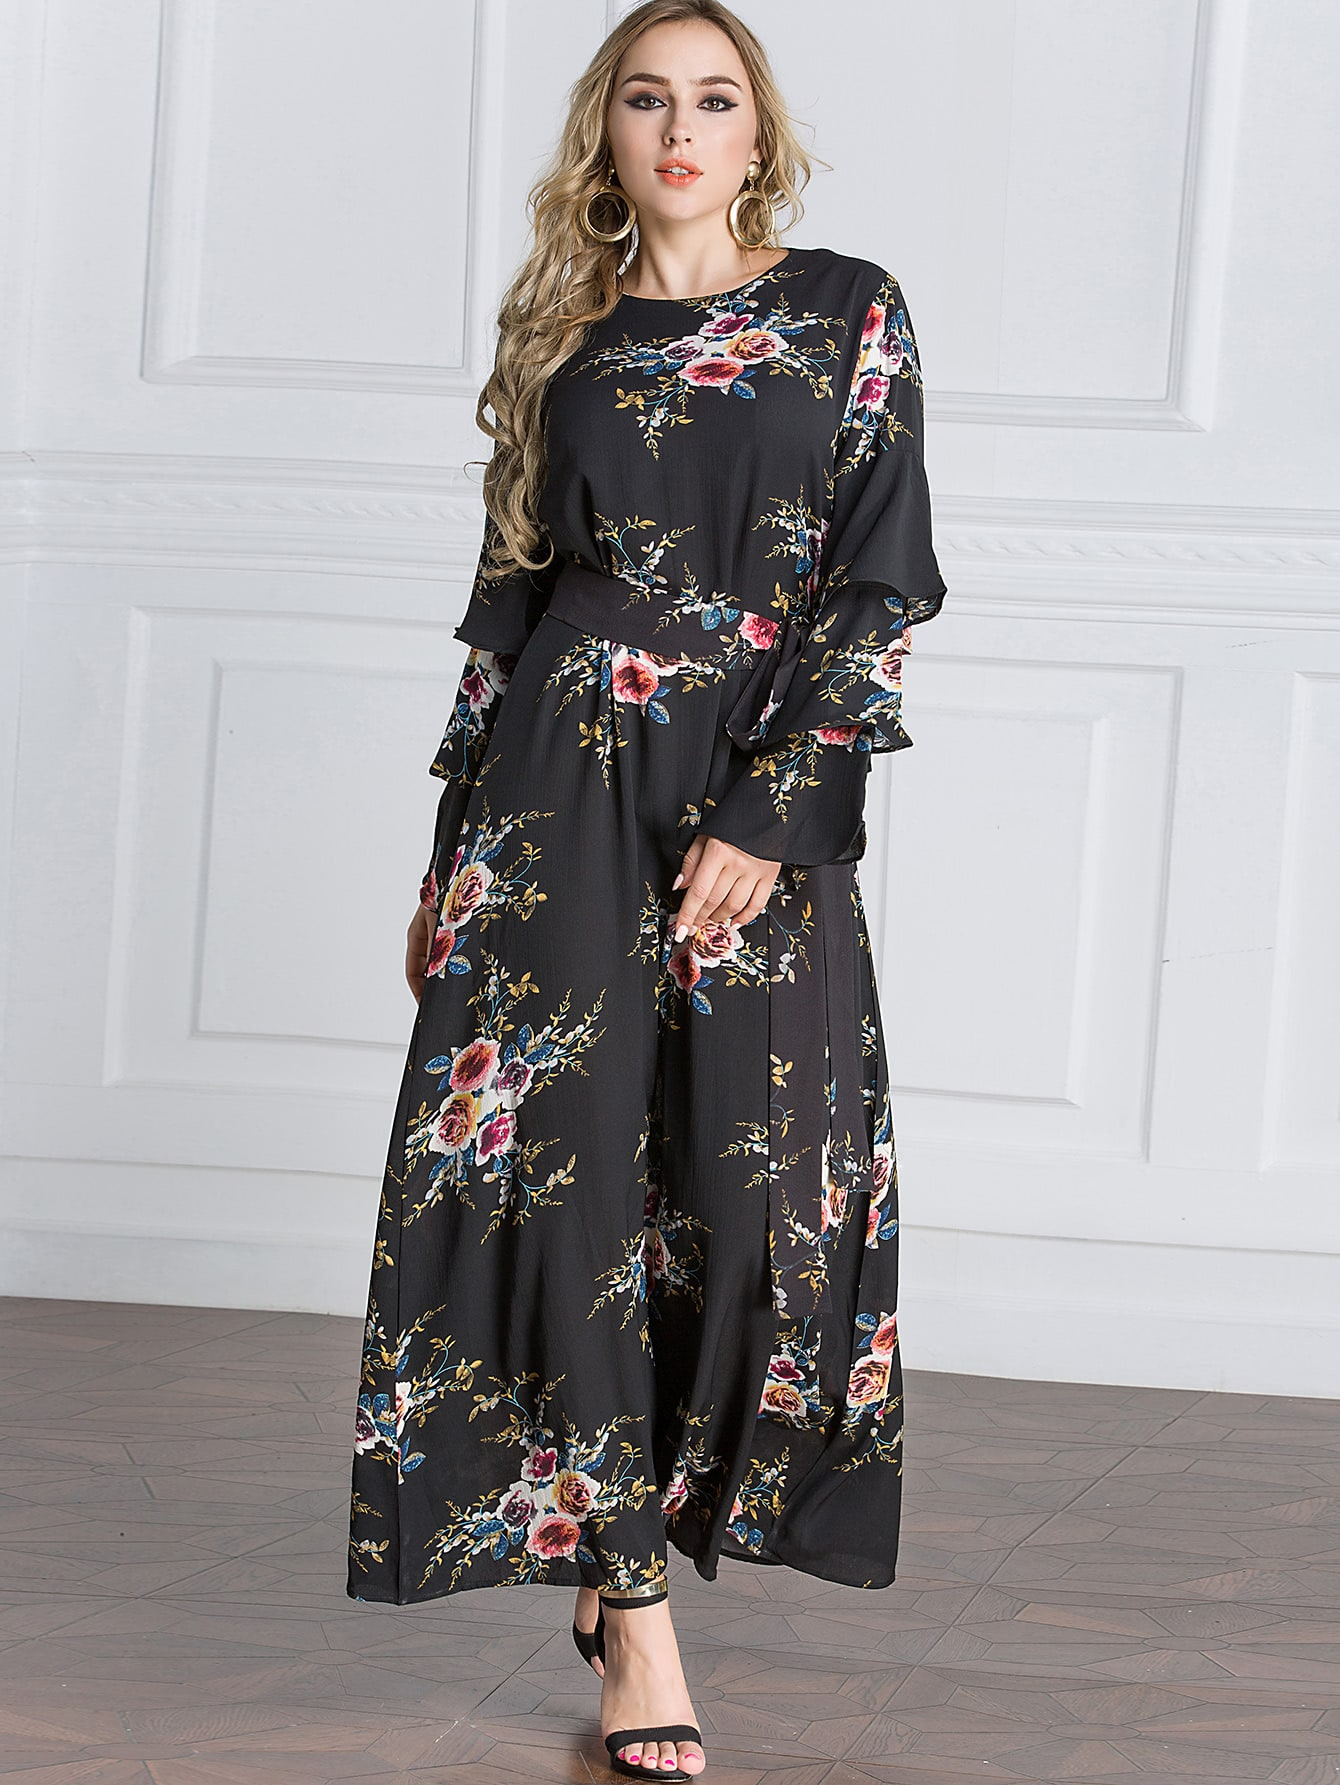 Botanical Print Flounce Layered Sleeve Tie Waist Dress